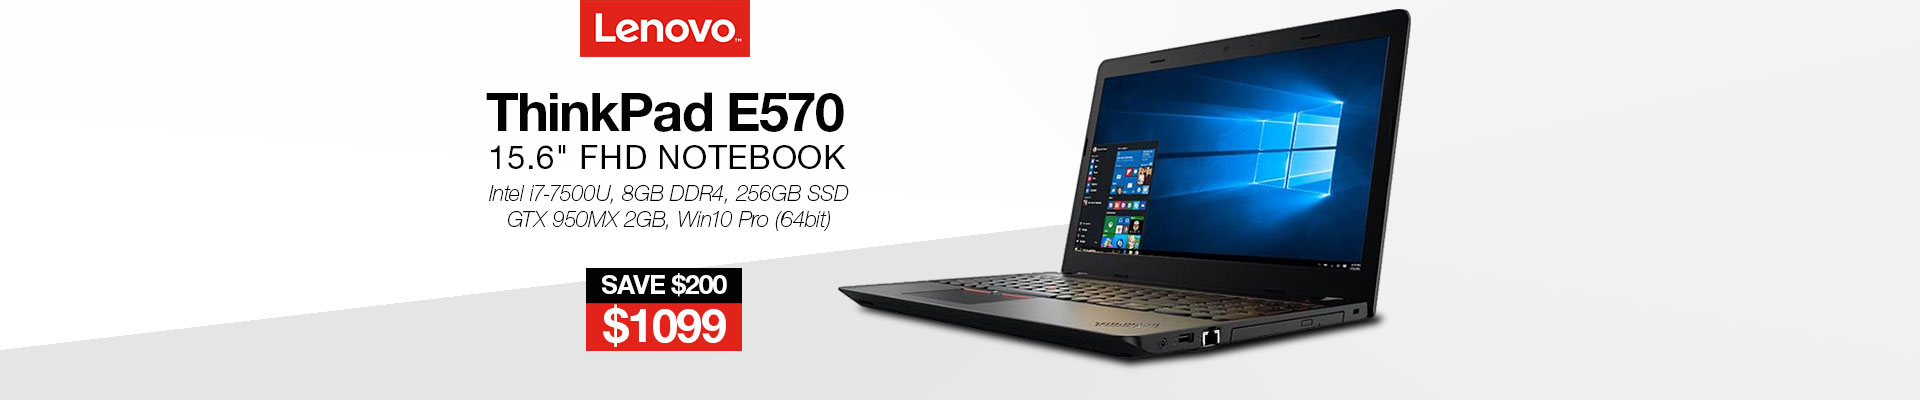 Lenovo ThinkPad E570 Notebook